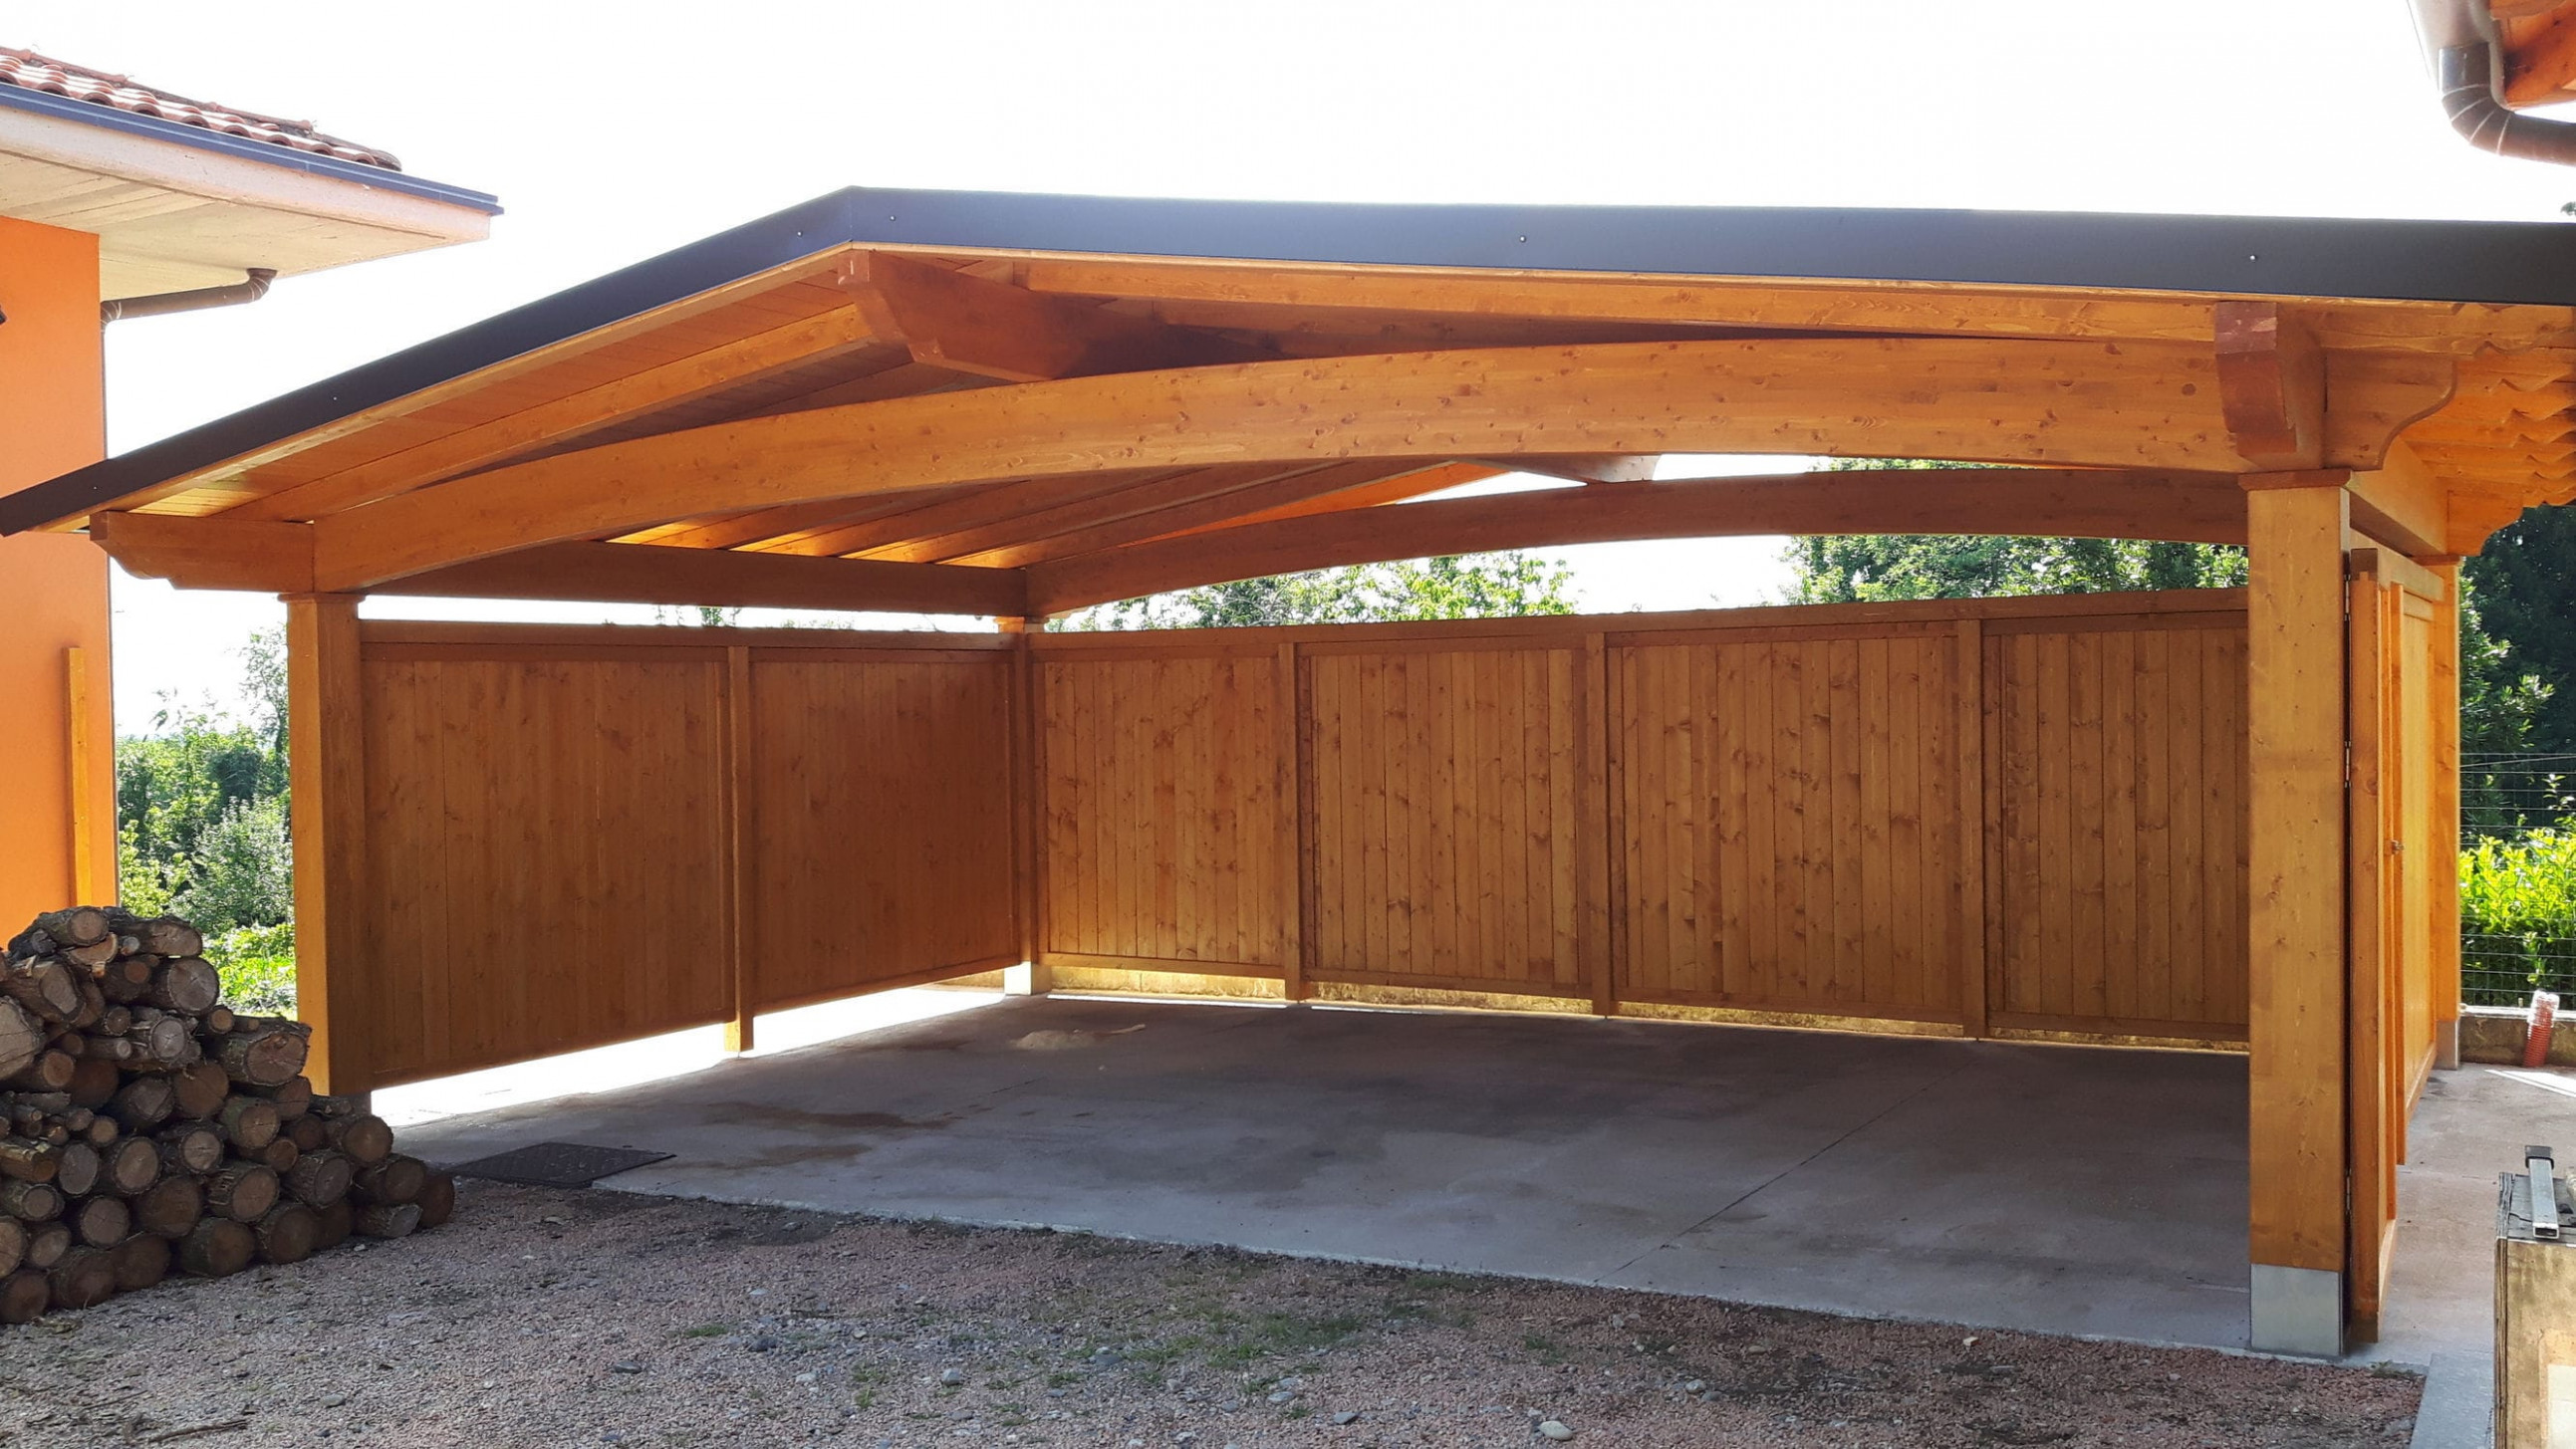 Wooden carport - ARCO - Proverbio Outdoor Design